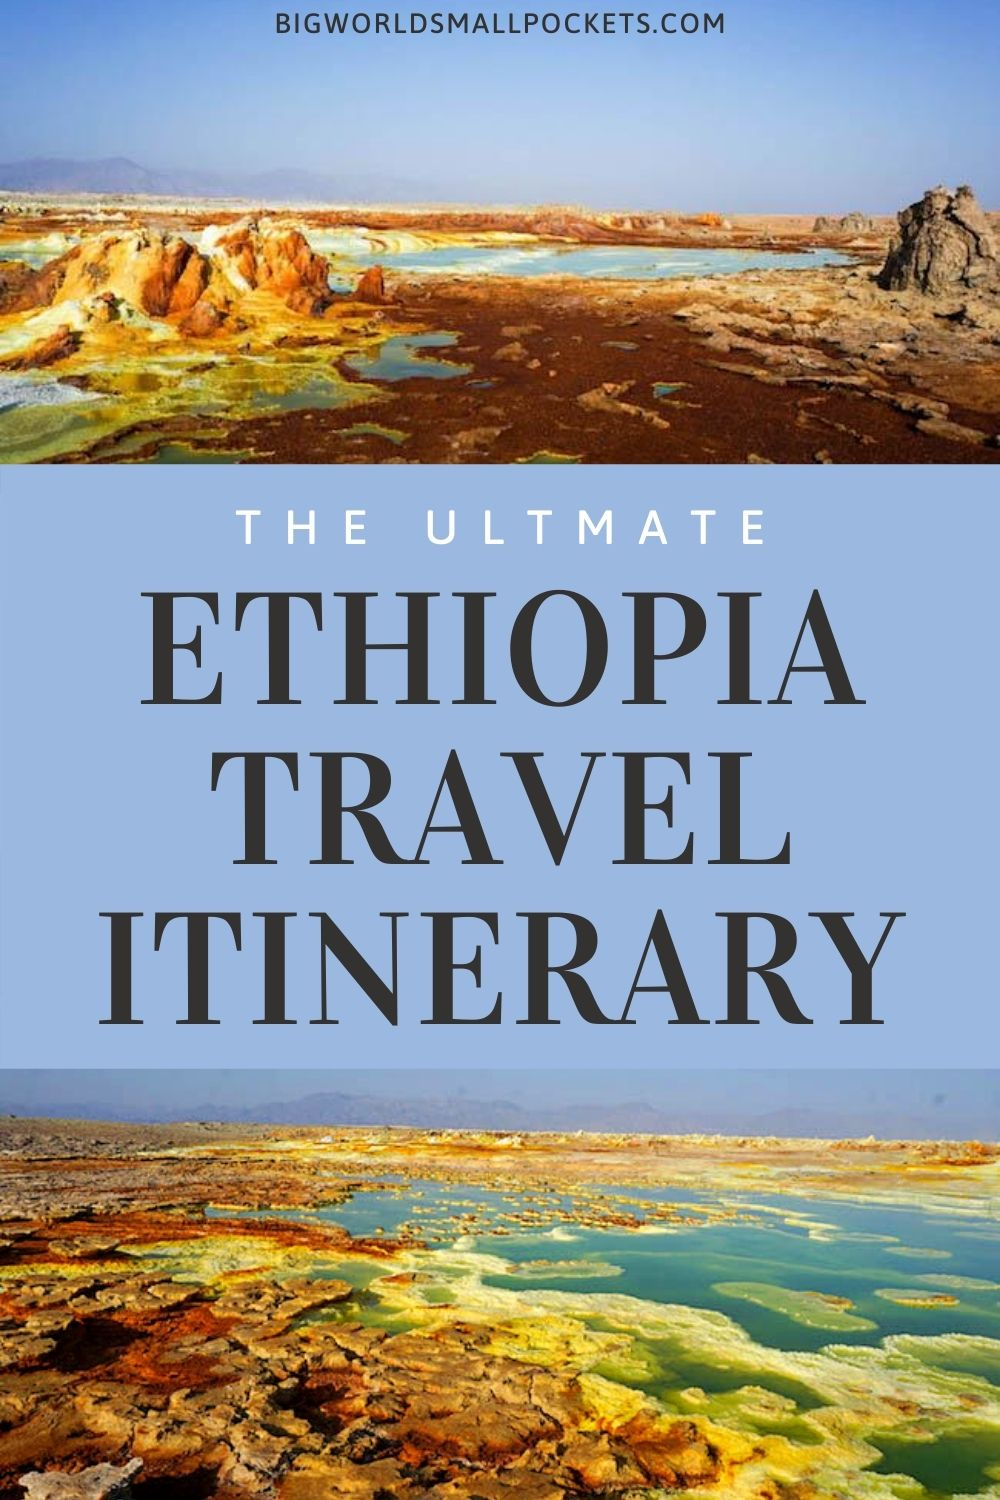 The Ultimate Ethiopia Itinerary